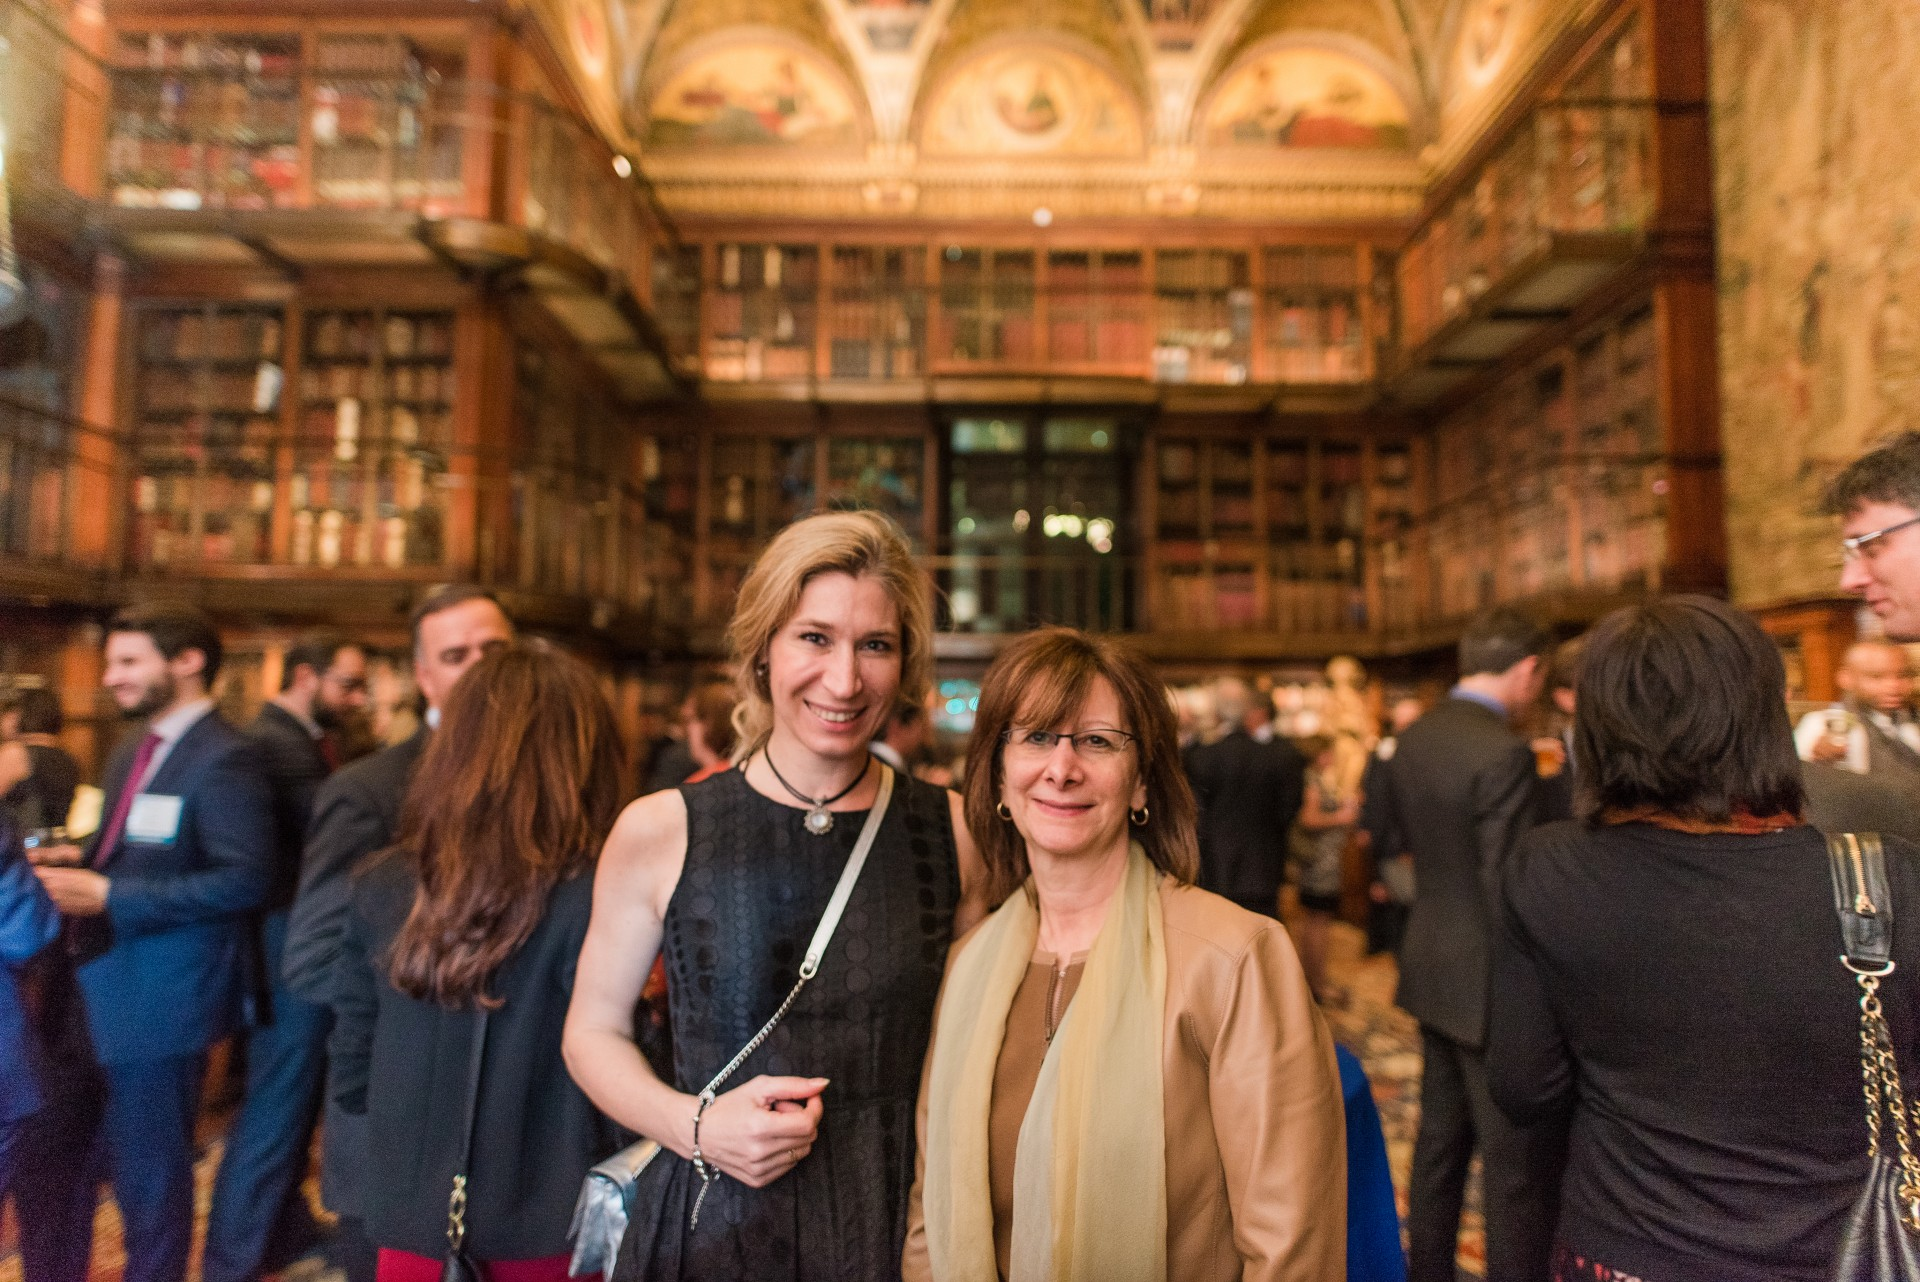 Lisa Savitt with Orsolyla Gorgenyi, President of AIJA (International Association of Young Lawyers) at the reception at The Morgan Library and Museum.